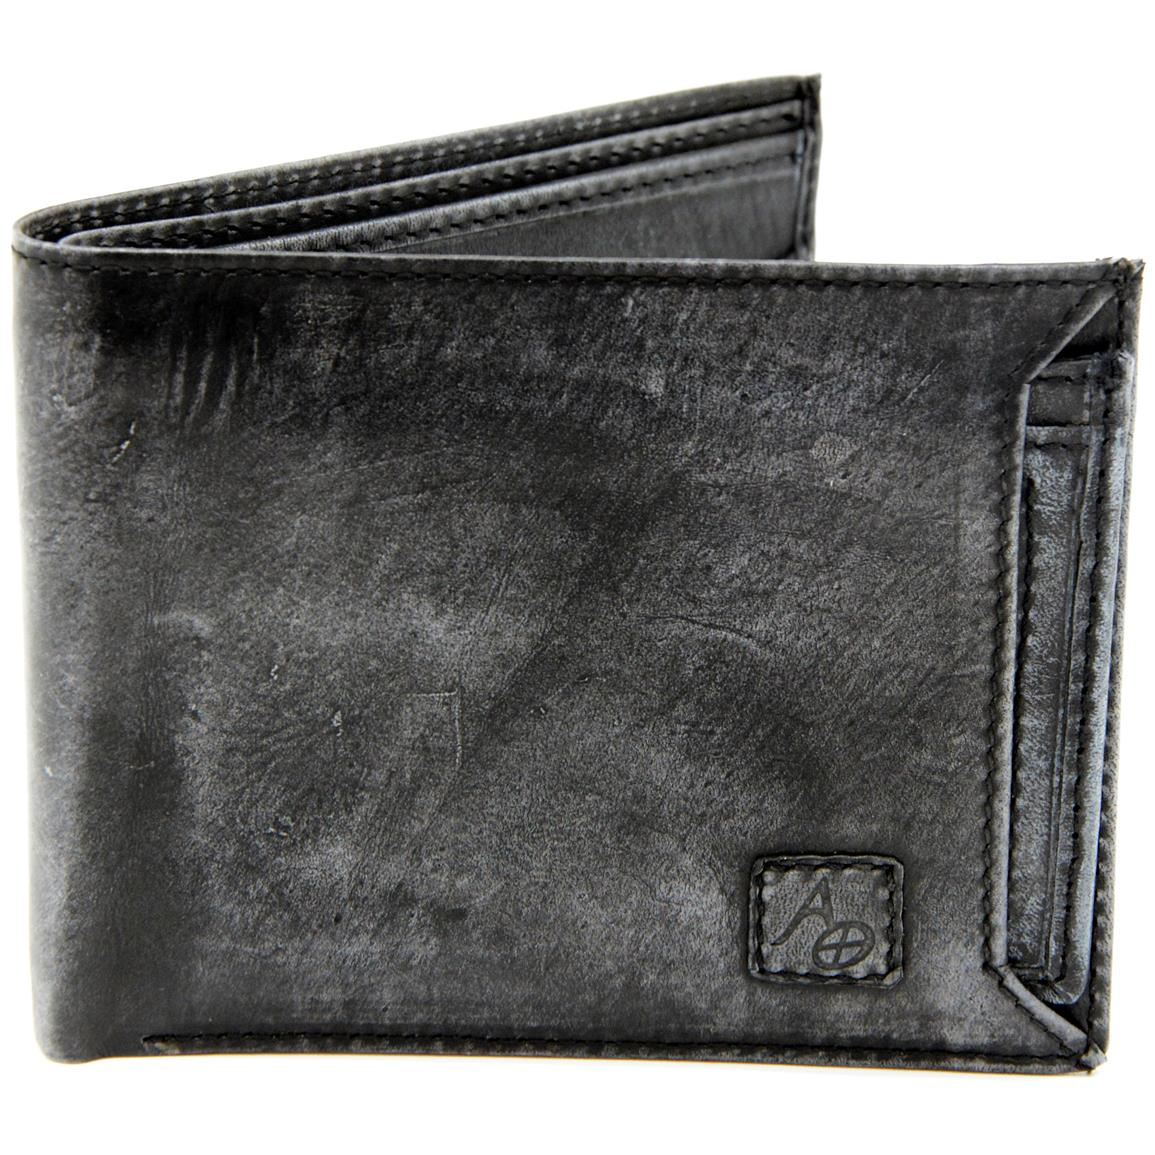 American Outdoorsman Washed Leather Bifold Wallet with Detachable ID Holder, Black